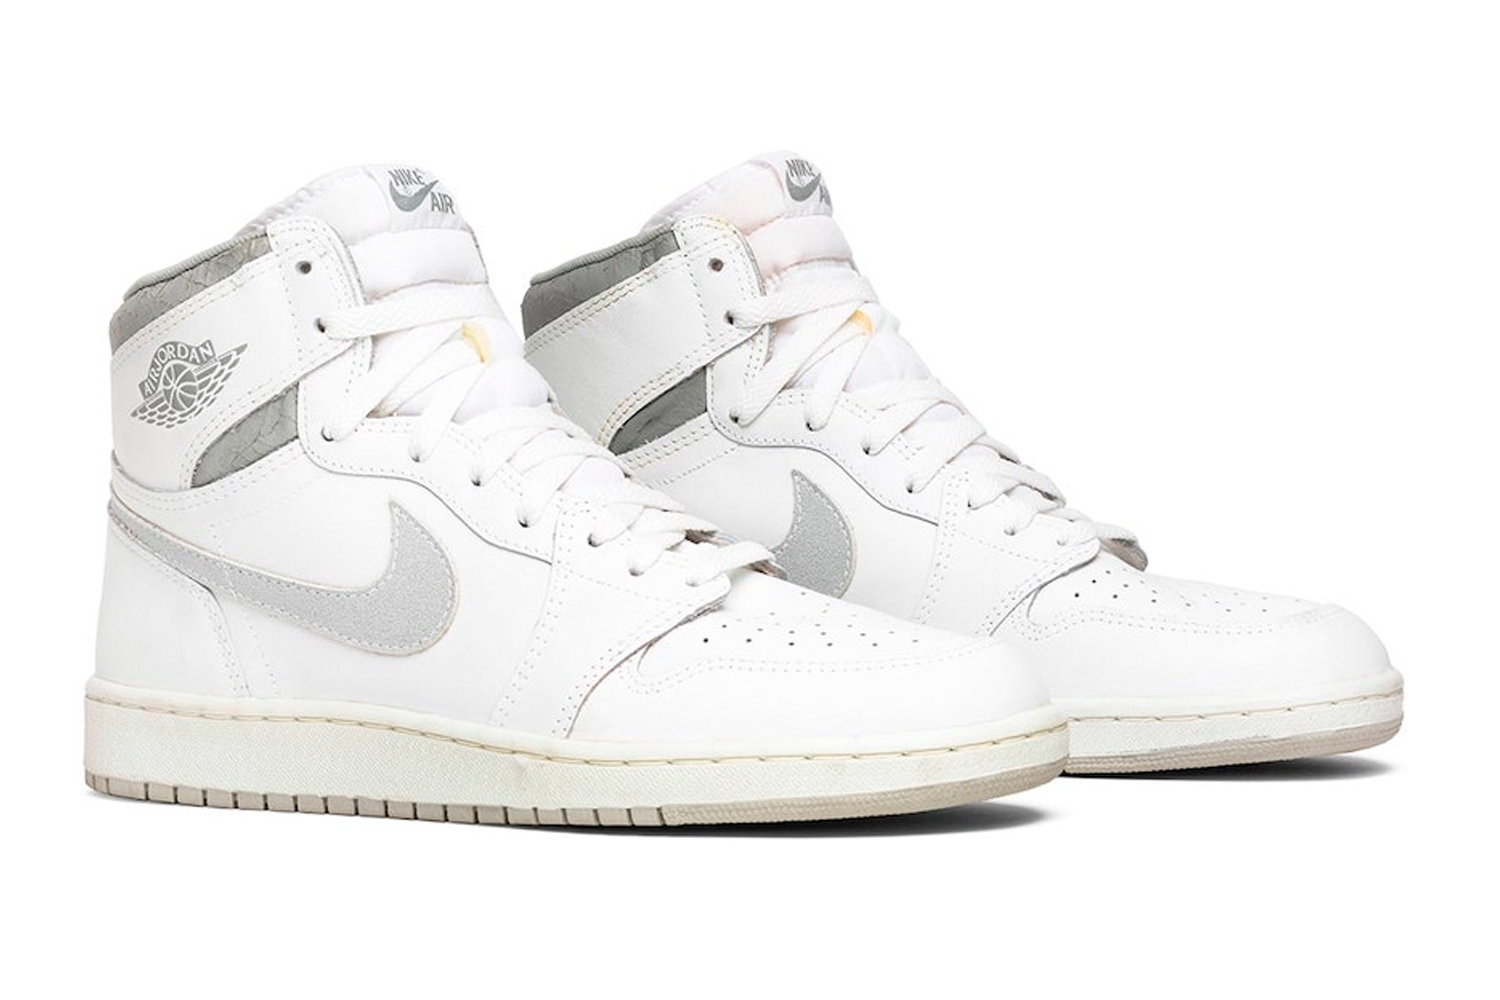 """Jordan 1 """"Neutral Grey"""" may be back after 35 Years"""